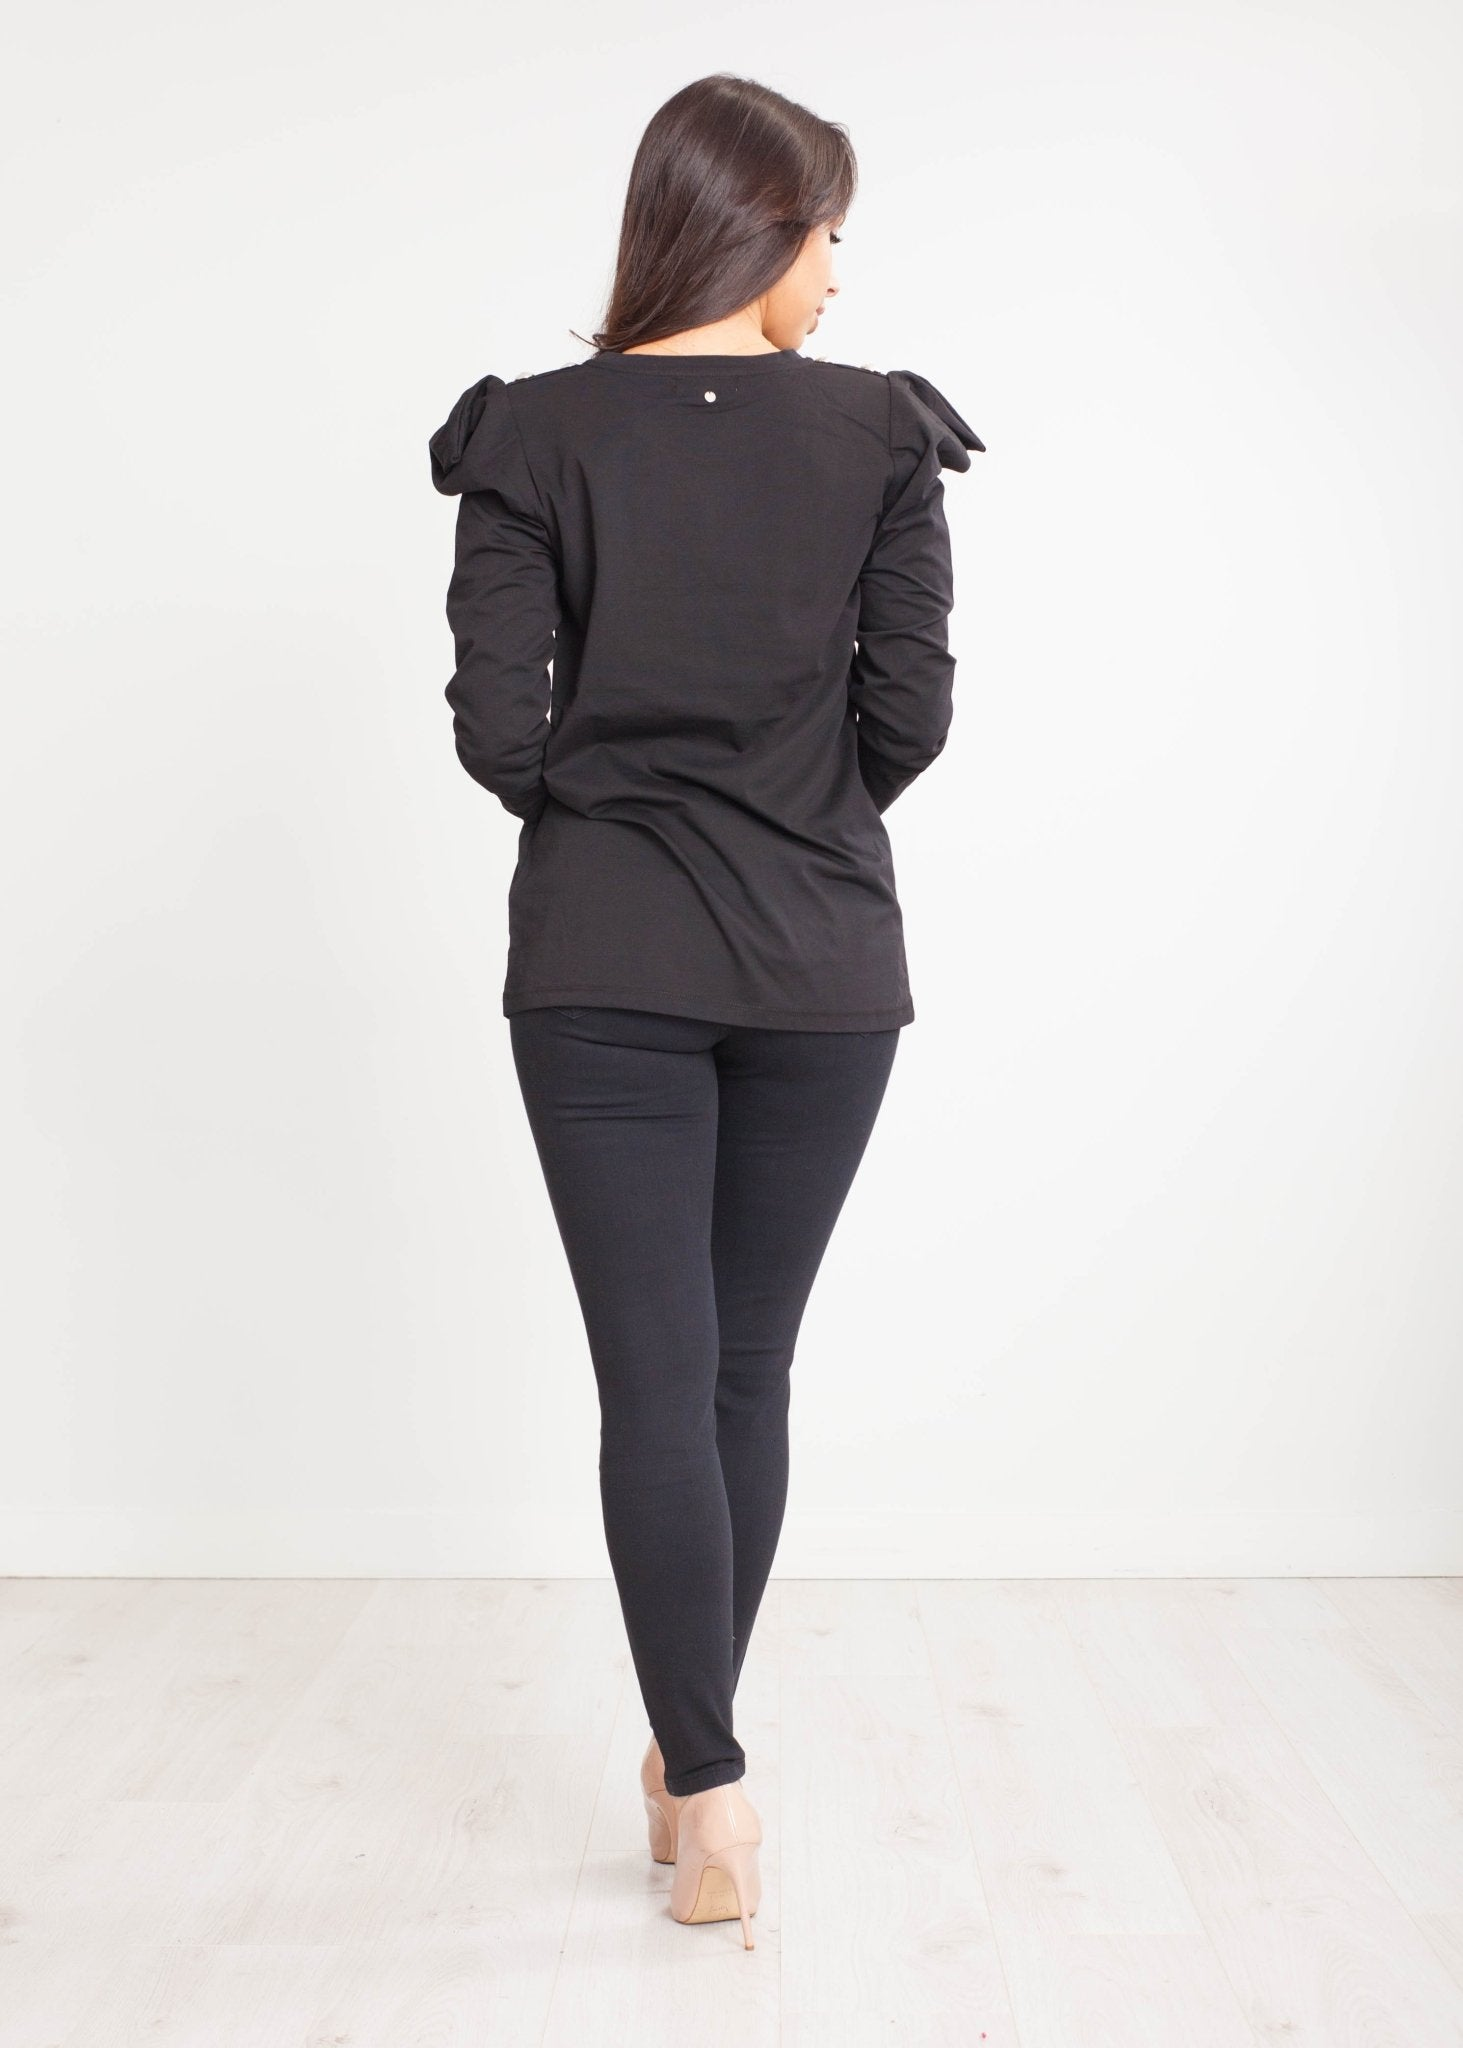 Sophia Padded Shoulder Top In Black - The Walk in Wardrobe